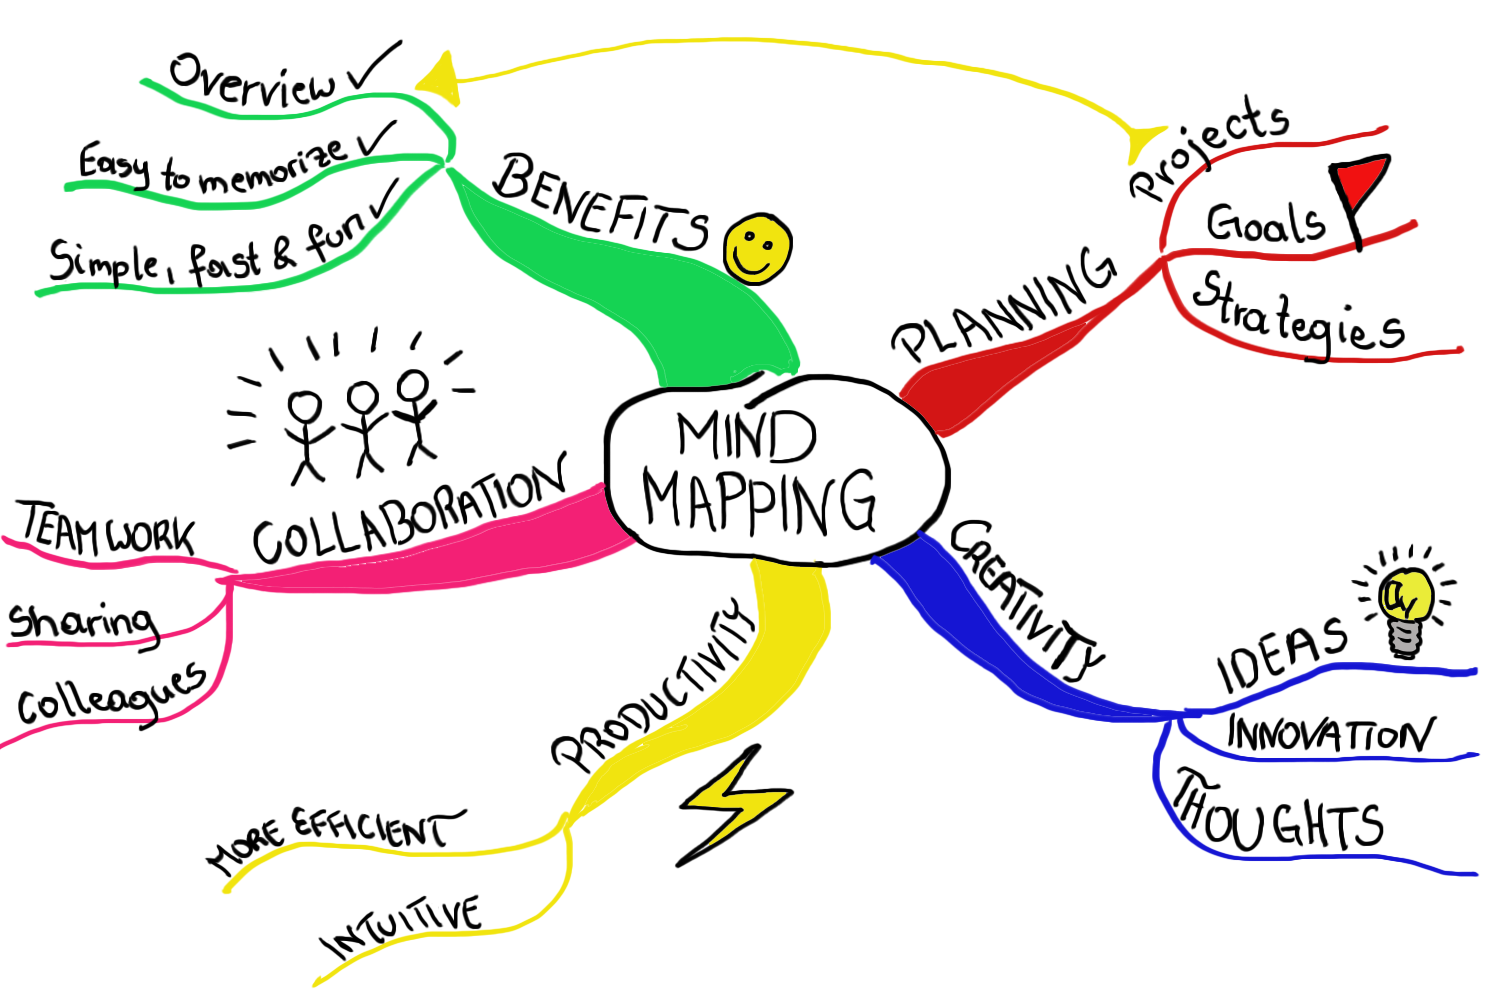 The Student S Guide To Mind Mapping Mindmeister Blog